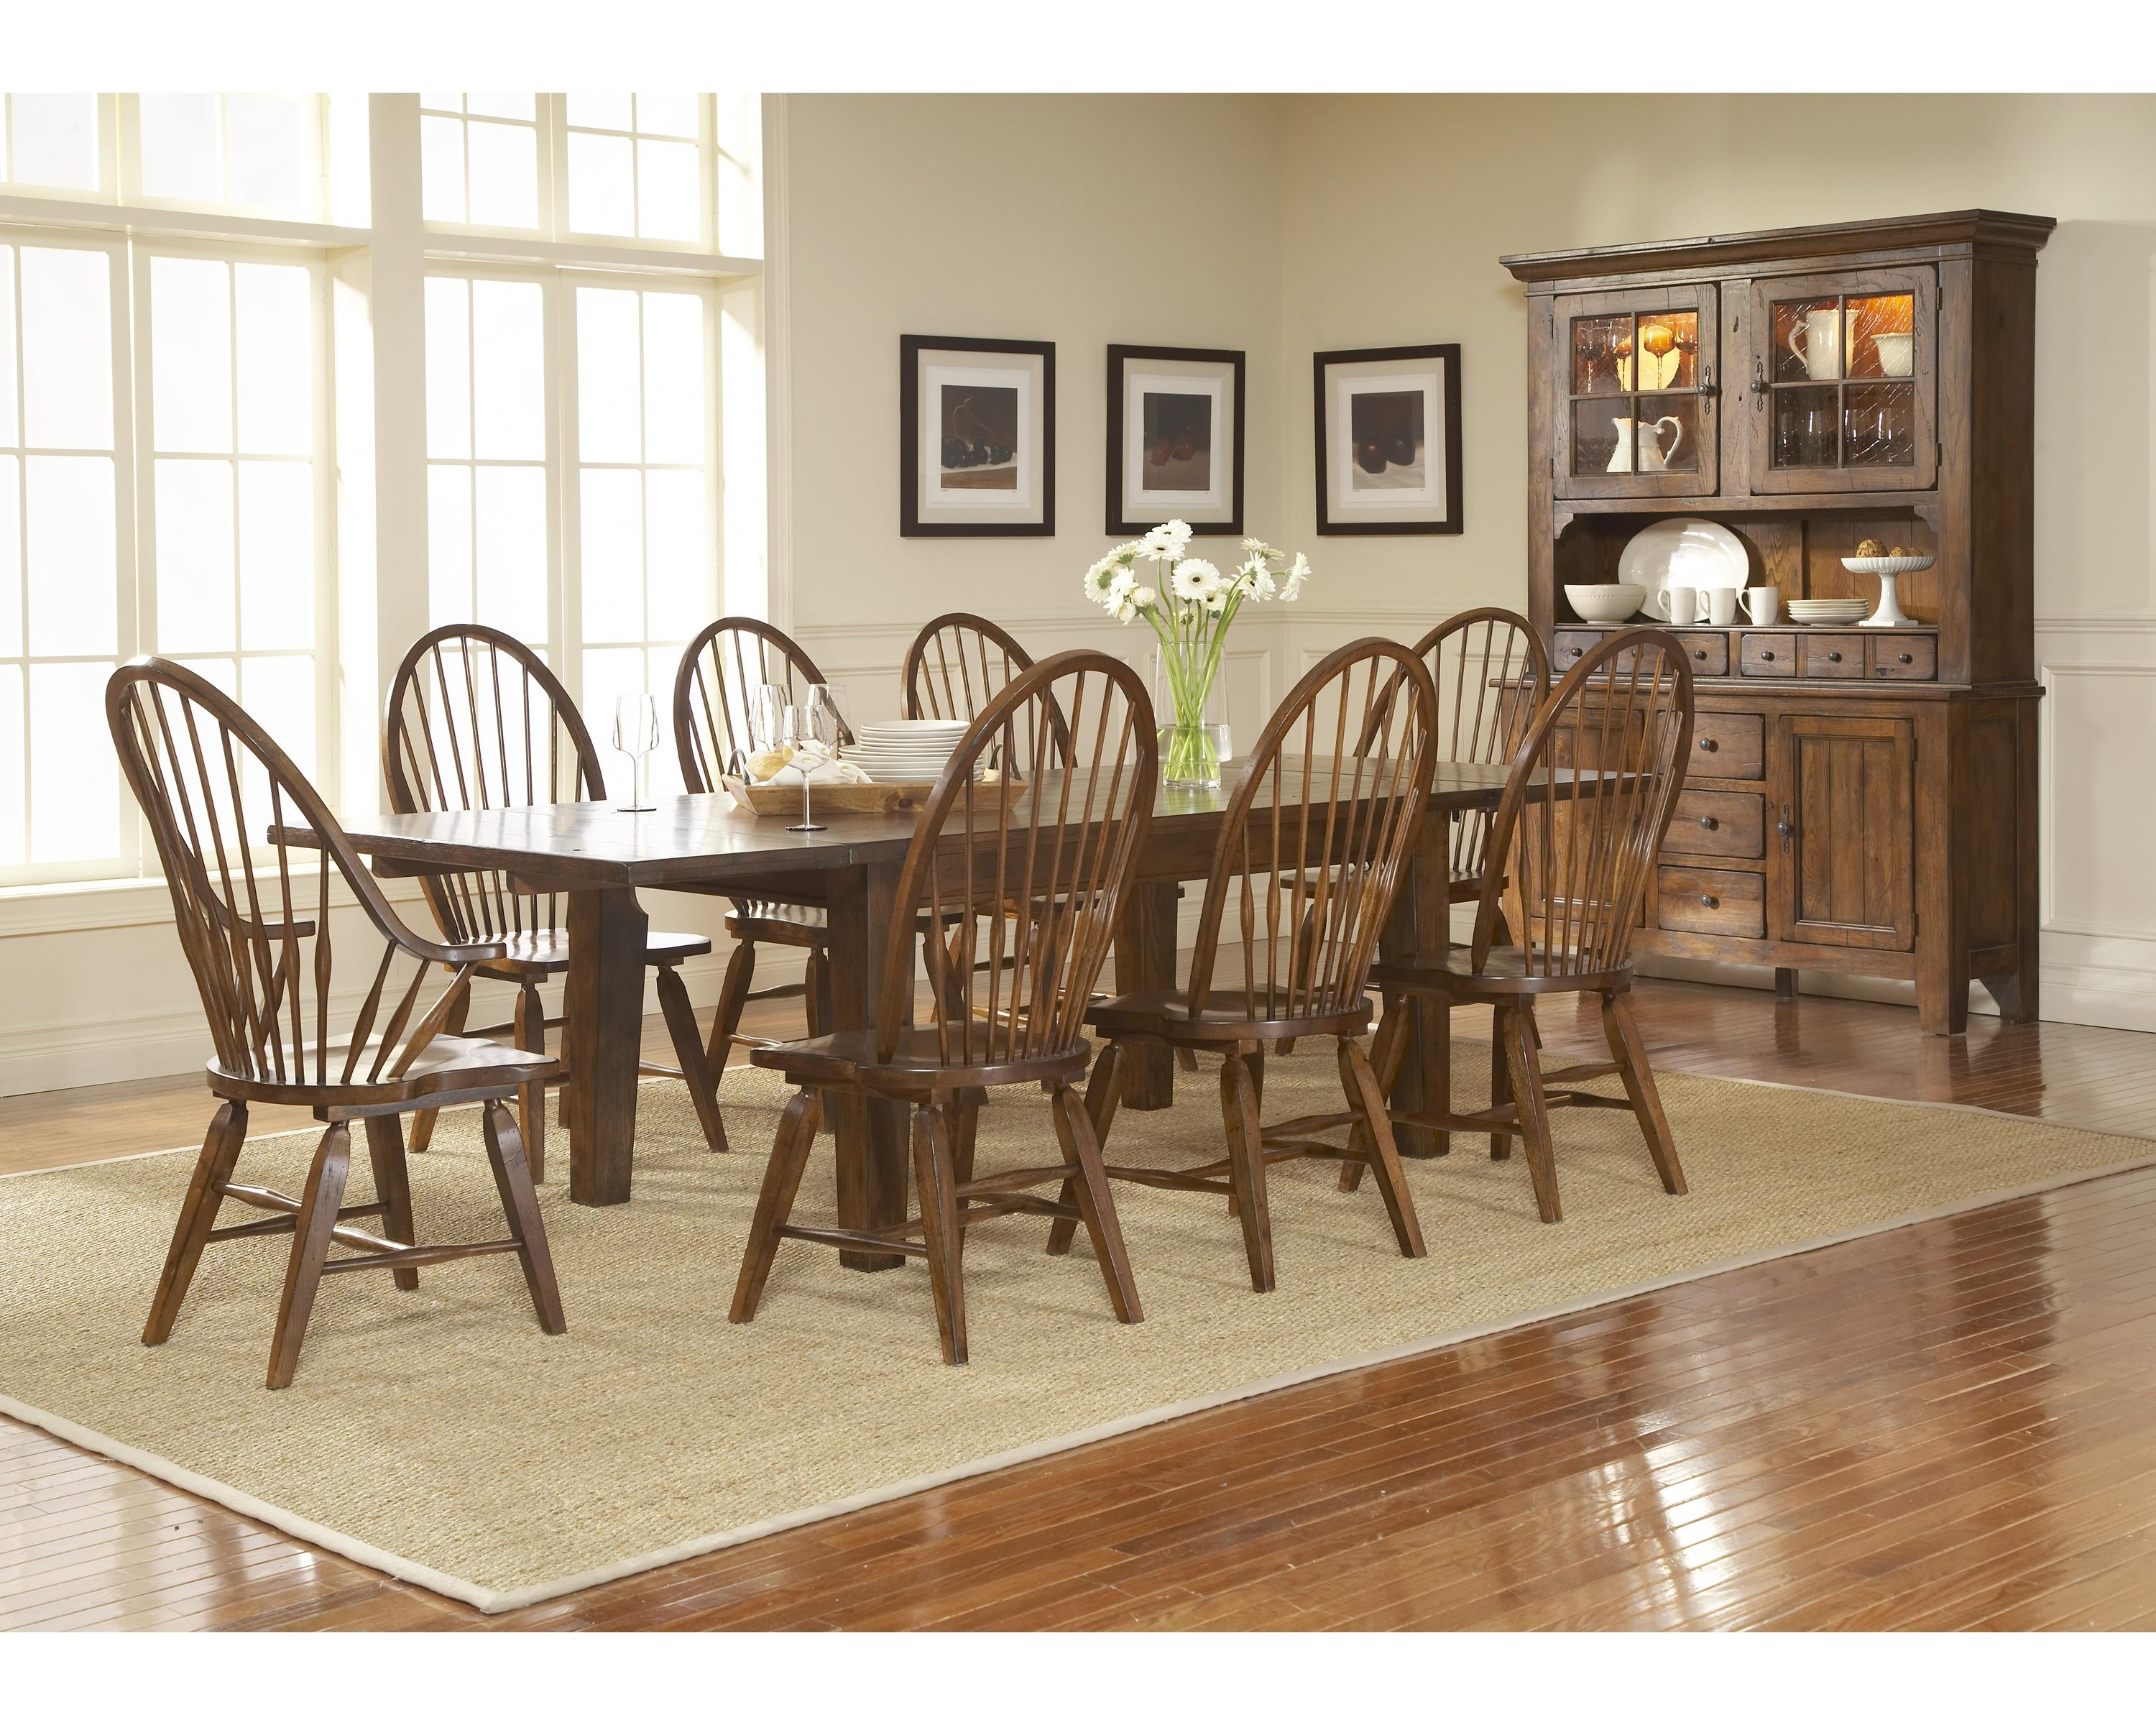 Leg Dining Table With Leaves By Broyhill Furniture Wolf And - Broyhill fontana dining room set